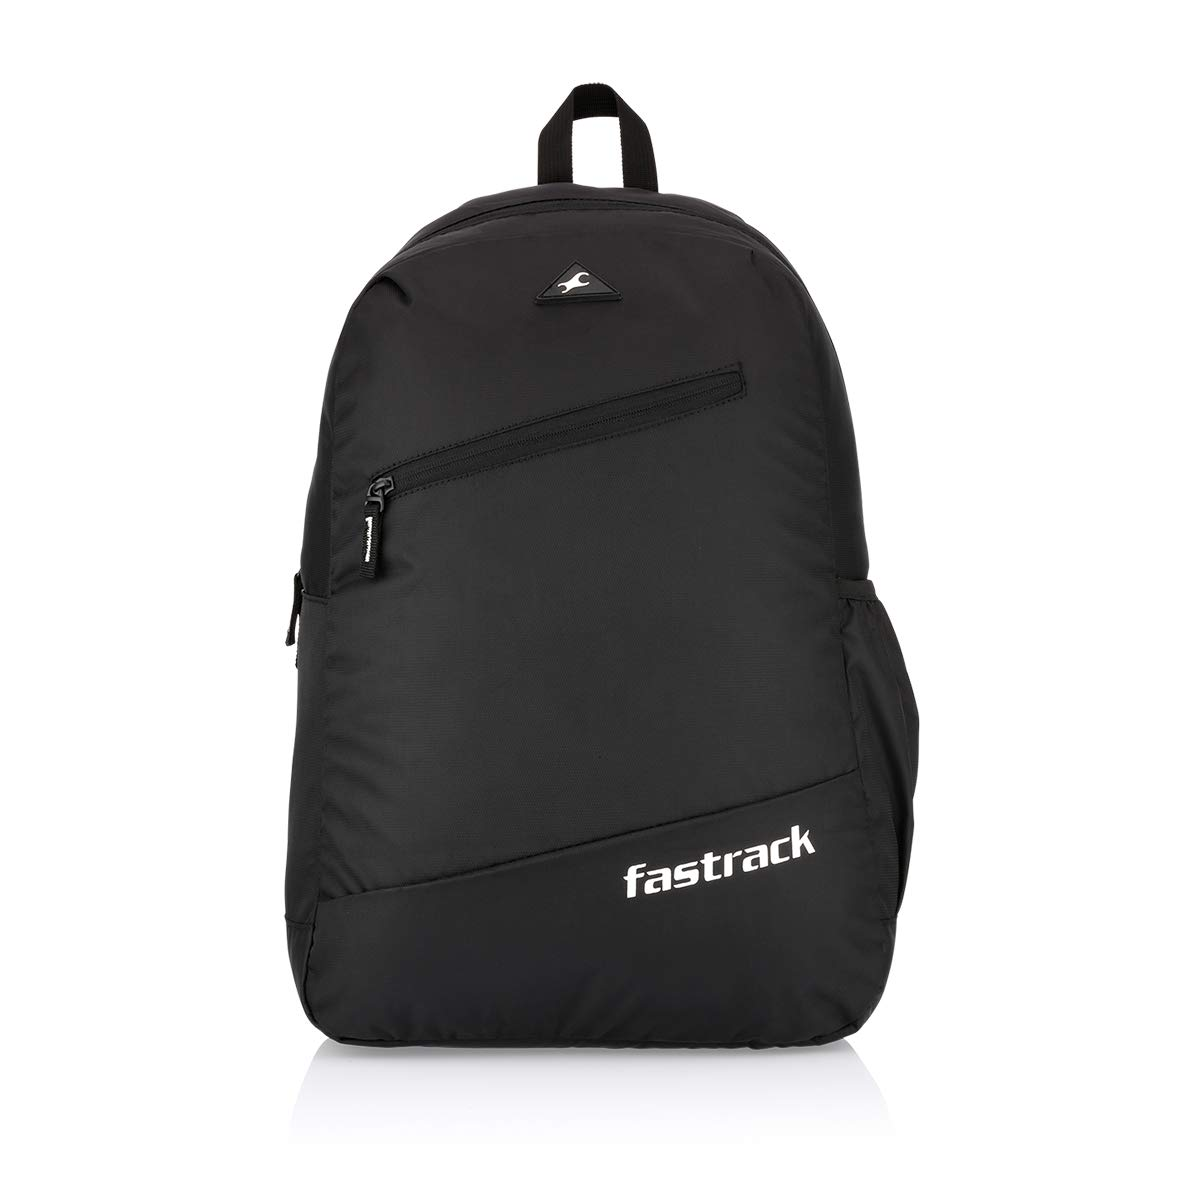 Great Deal Fastrack 25 Ltrs Backpack